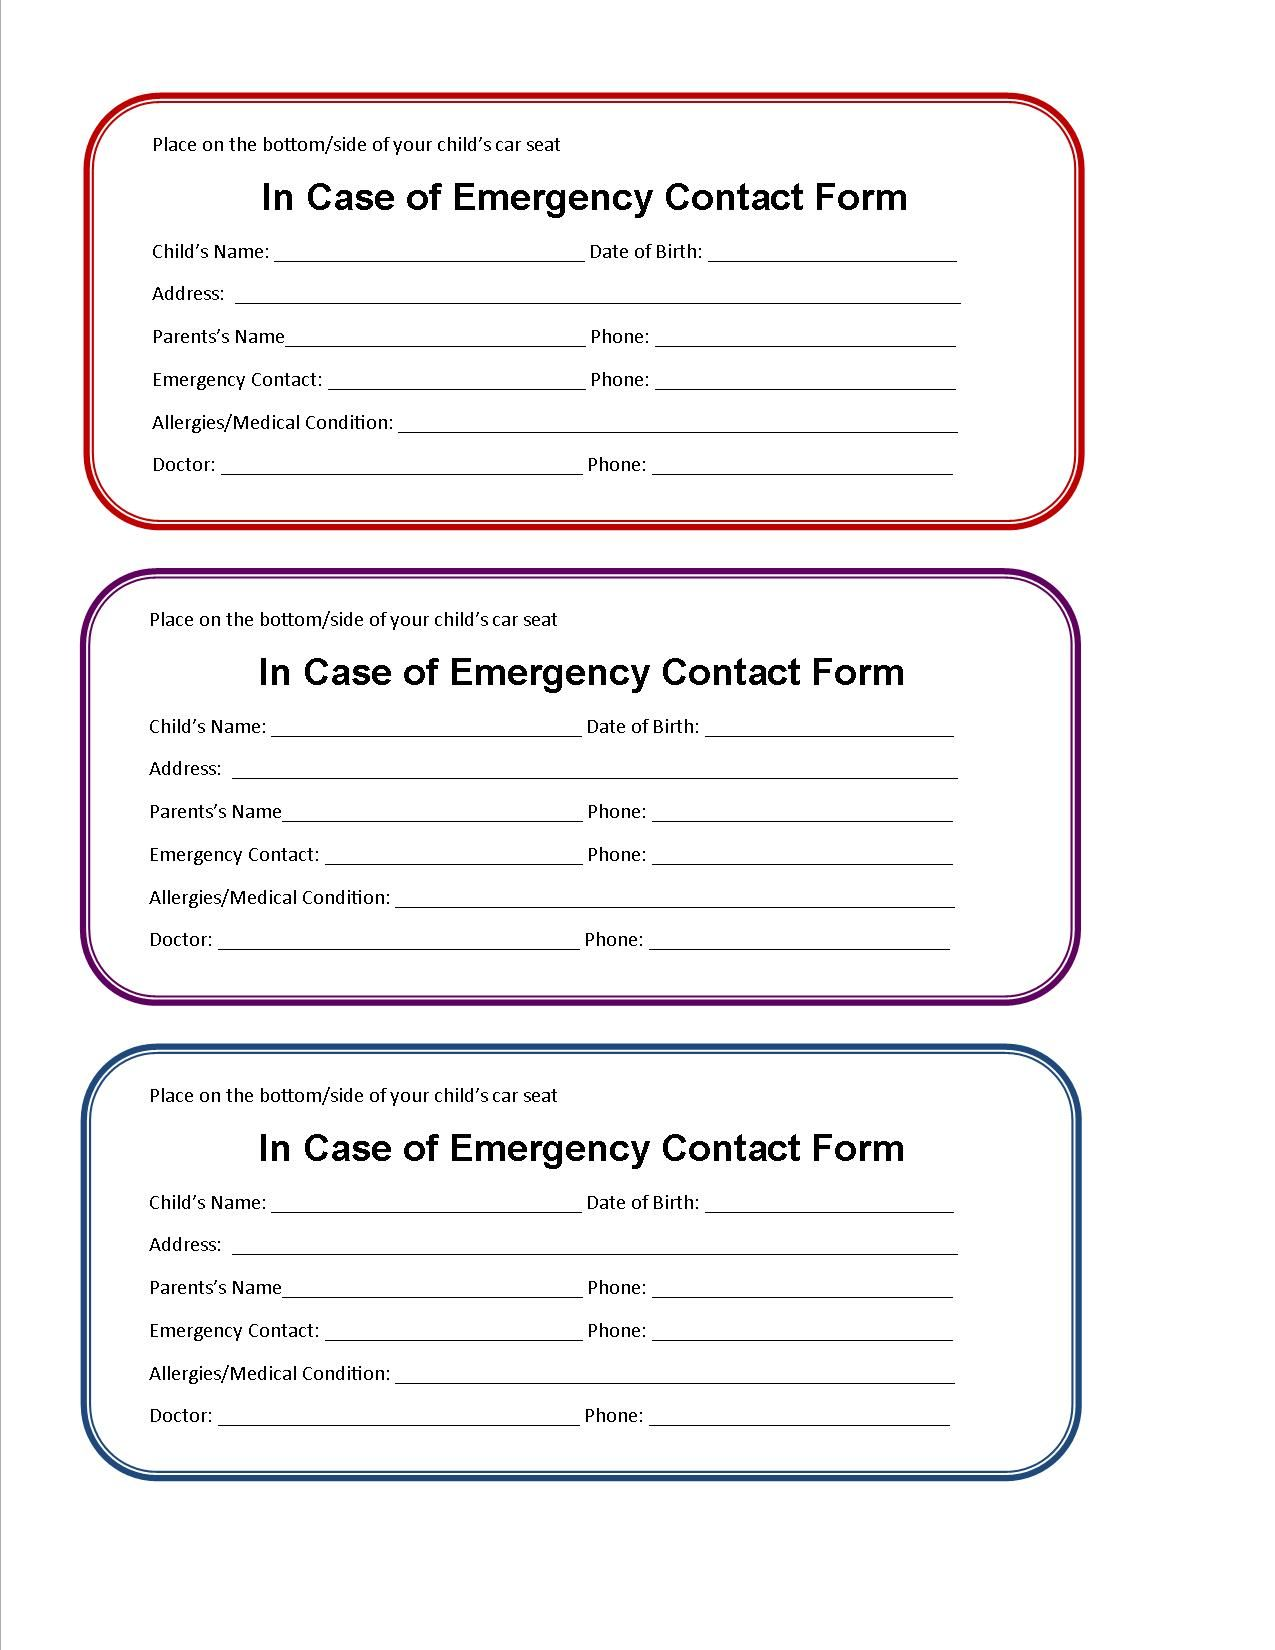 printable emergency contact form for car seat | Cub scouts